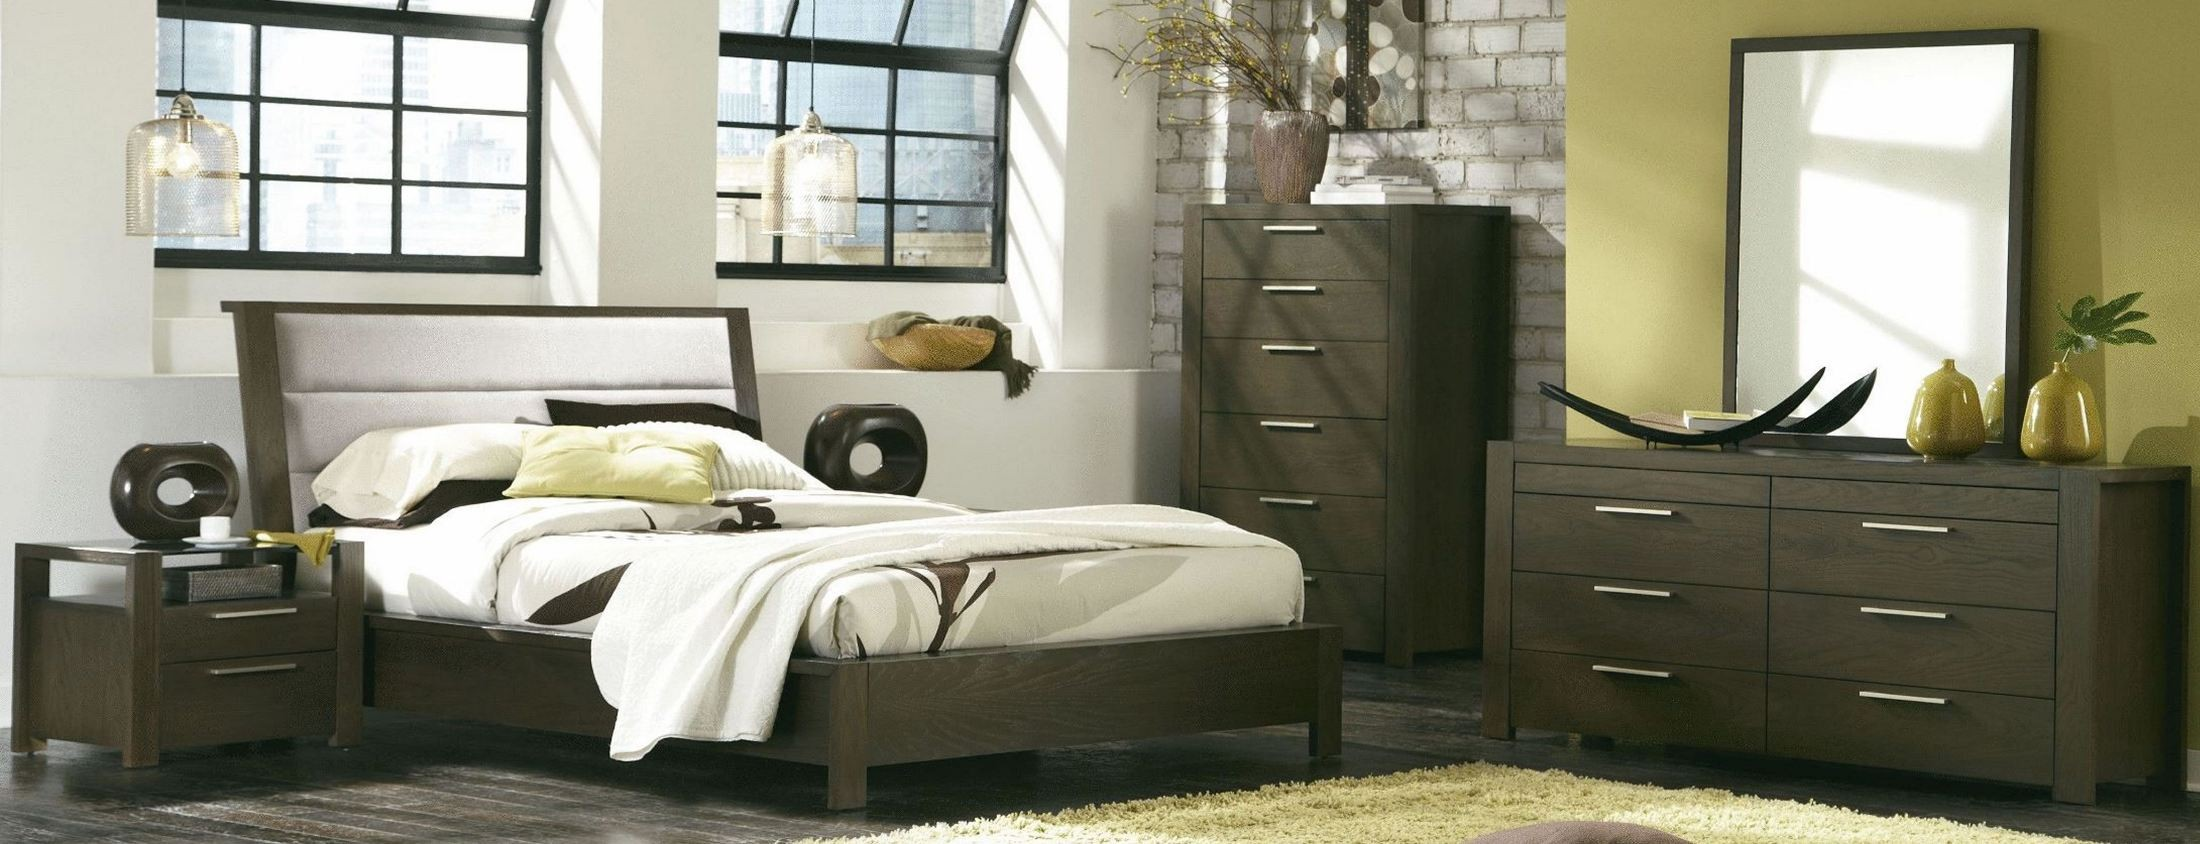 hudson bedroom set hudson upholstered platform bedroom set from casana 525 11817